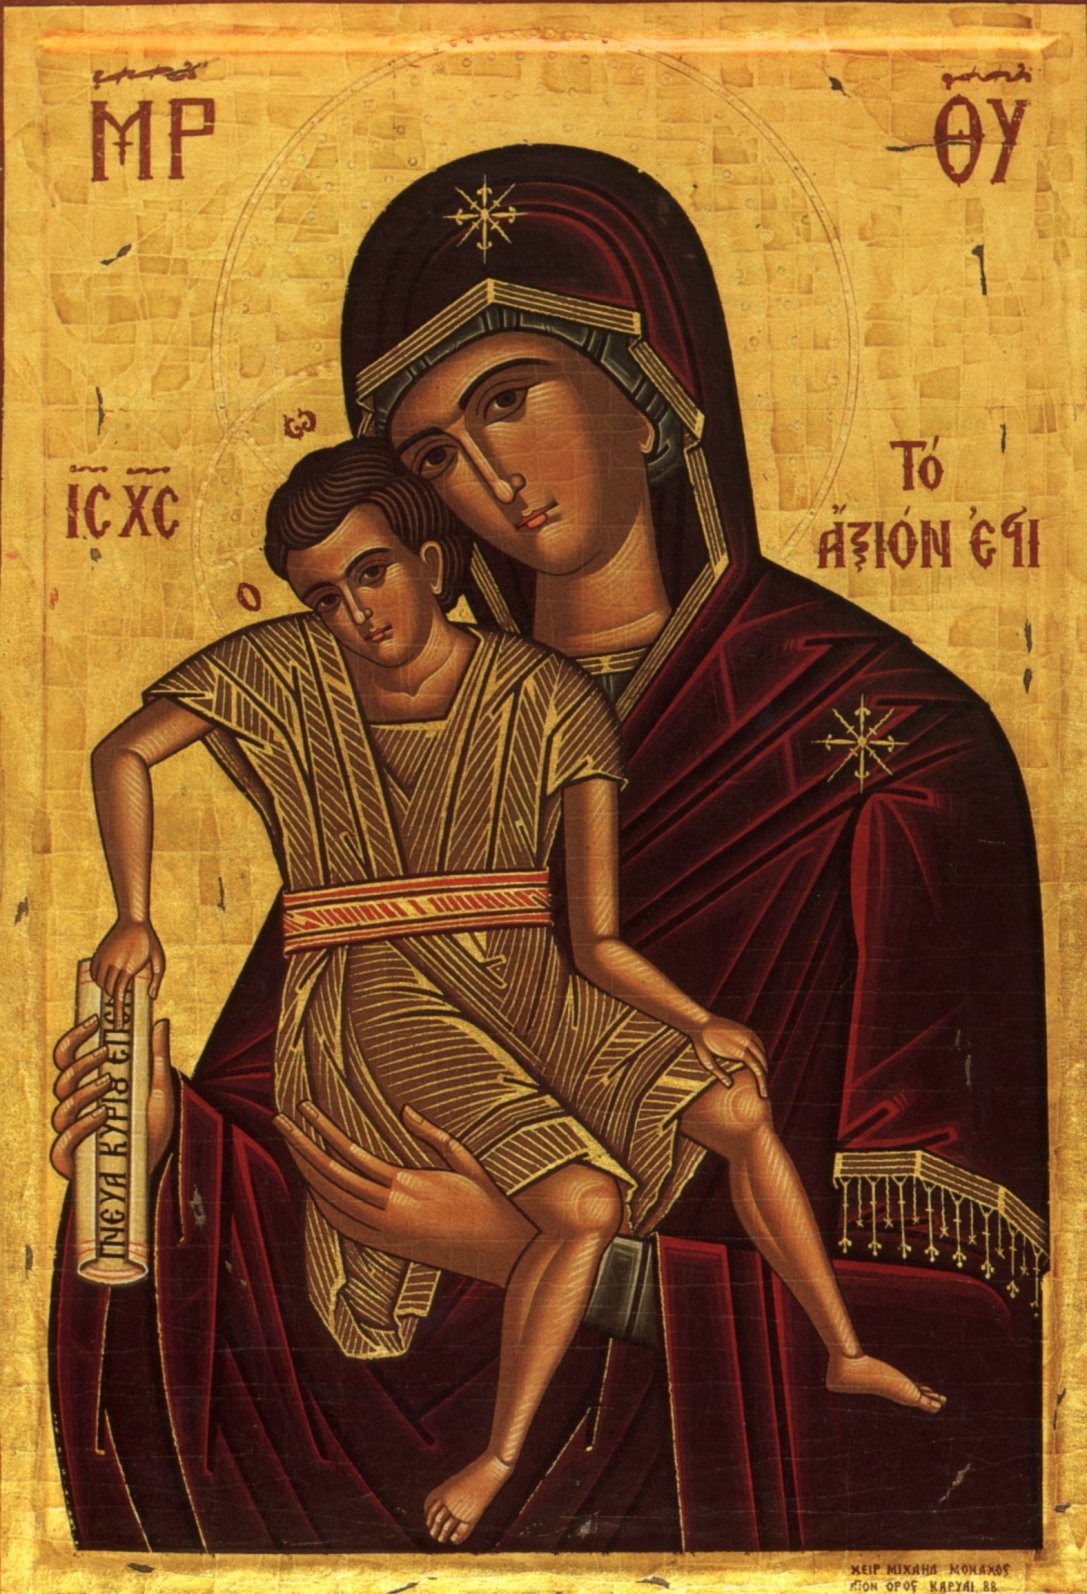 Icon quick saver. Prayer and miracles 73